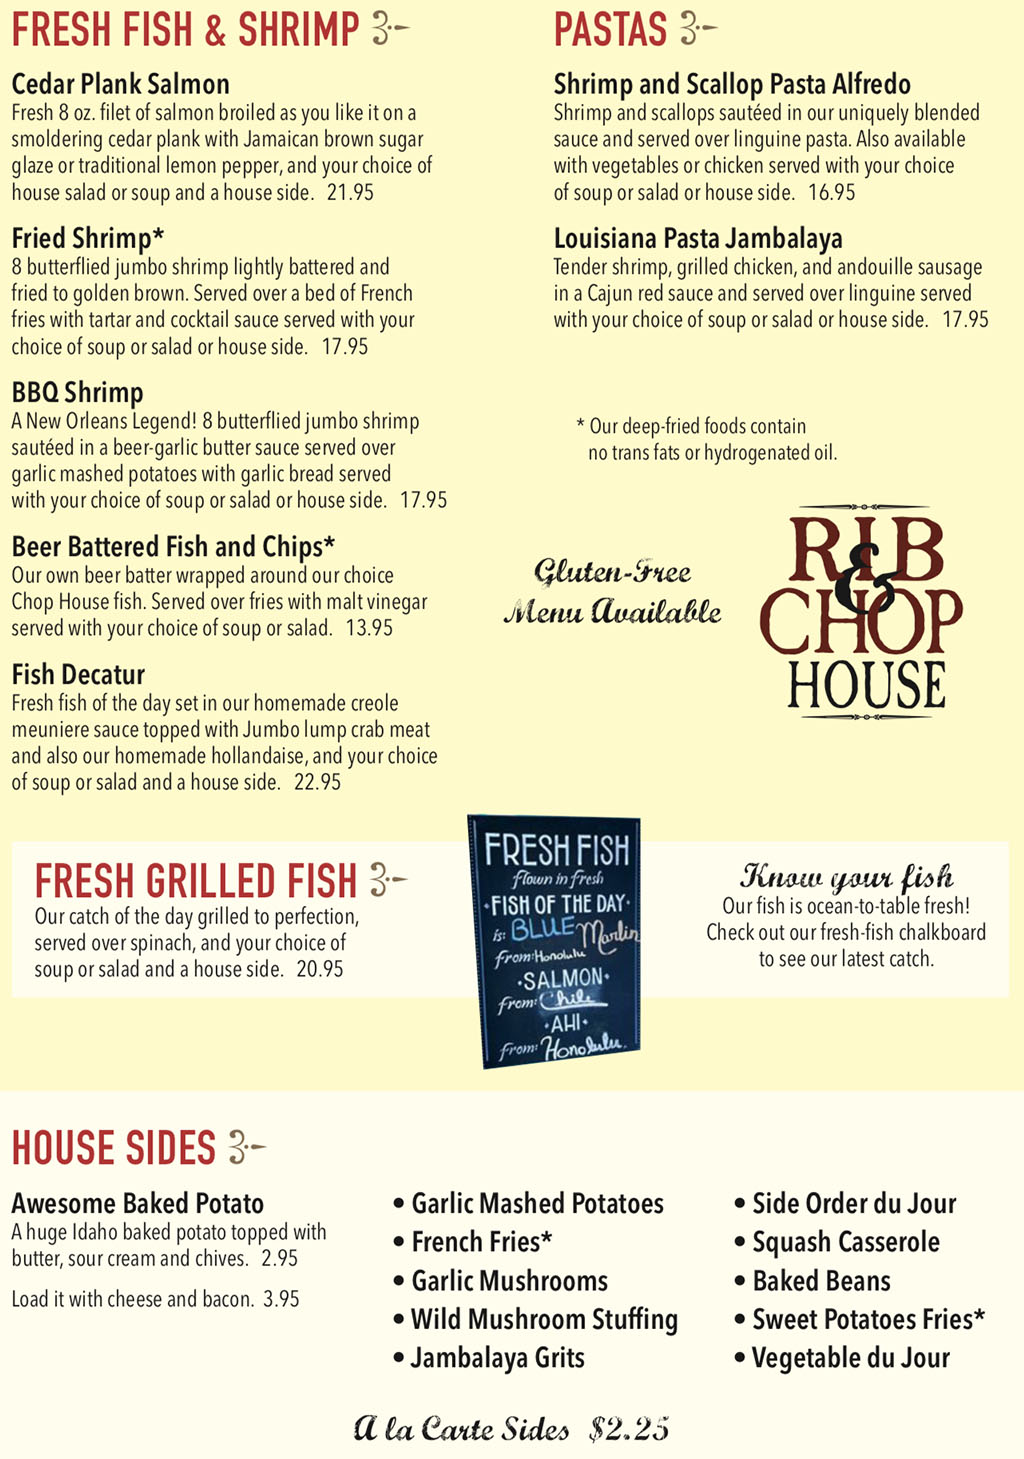 Rib And Chop House menu - fish, shrimp,pasta, sides